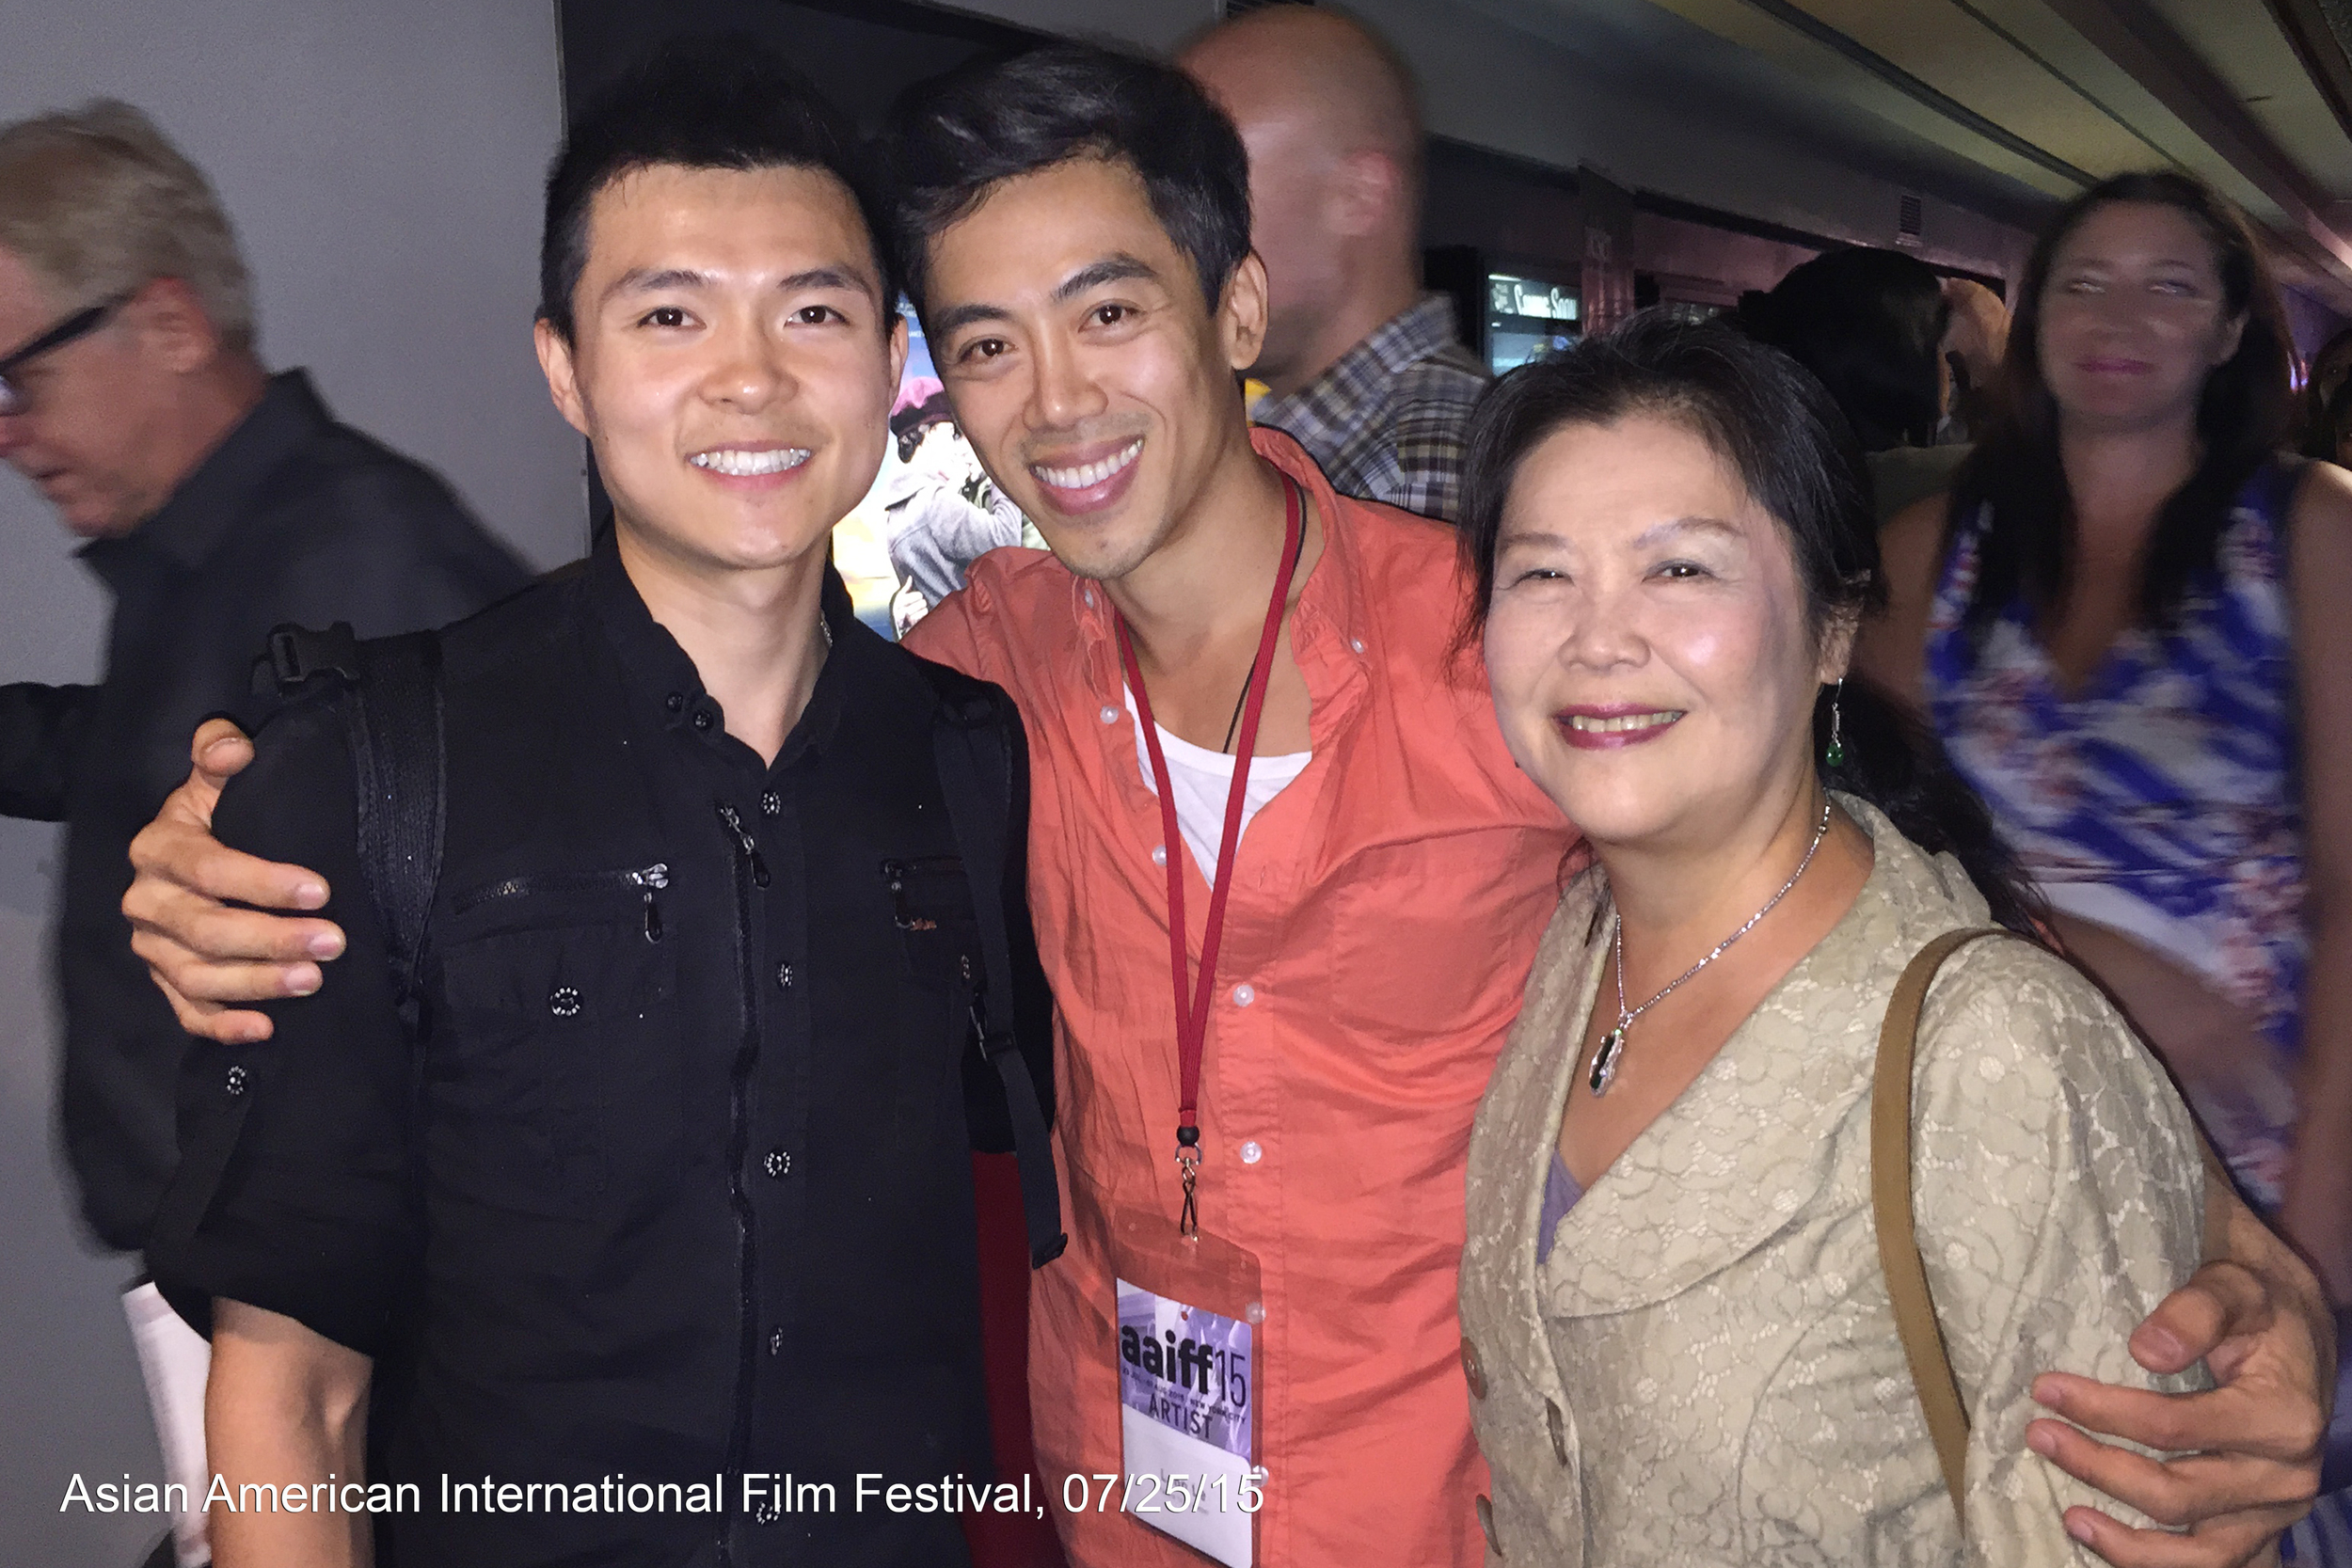 Actor Zilong Zee (Michael), director Leon Le and actress Min-Wen Huang (Mrs. Yue) at the Asian American International Film Festival screening in New York City, 07/25/2015.